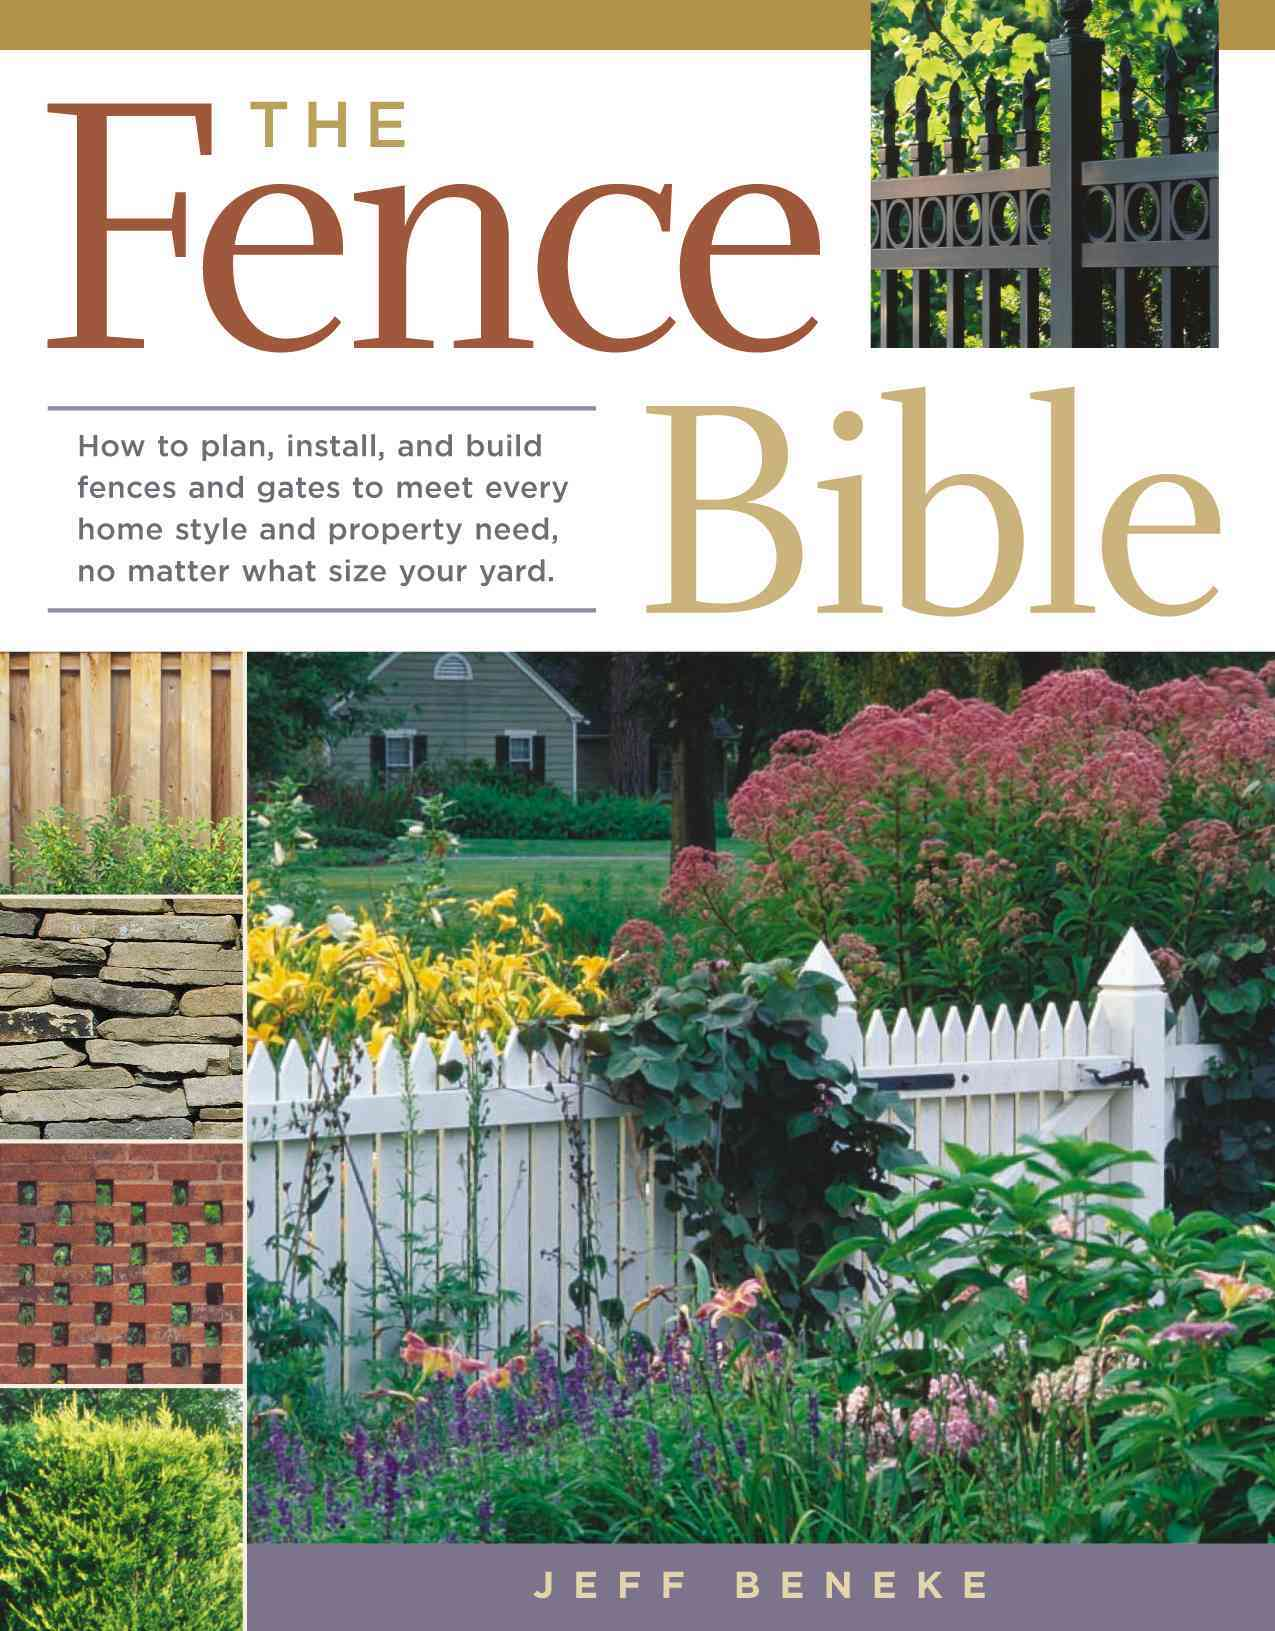 The Fence Bible: How to plan, install, and build fences and gates to meet every home style and property need, no ... (Paperback)